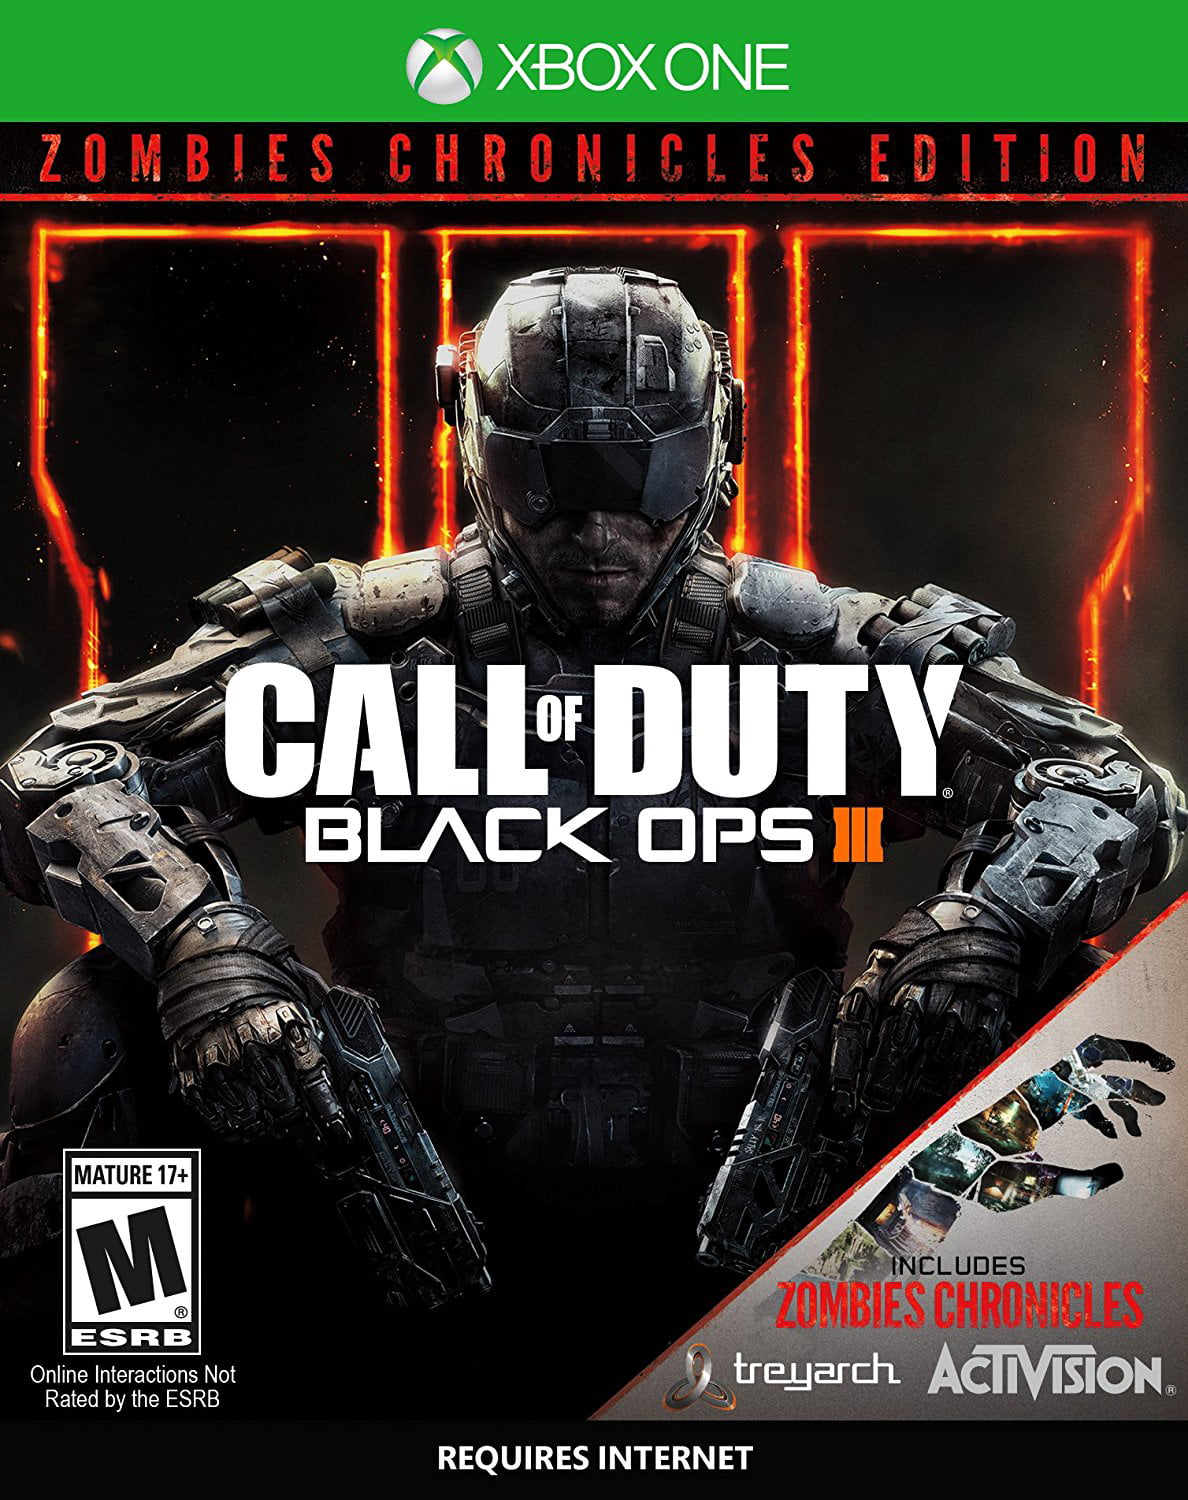 Call of Duty: Black Ops 3 Zombie Edition, Activision, Xbox One, 047875881228 by Activision